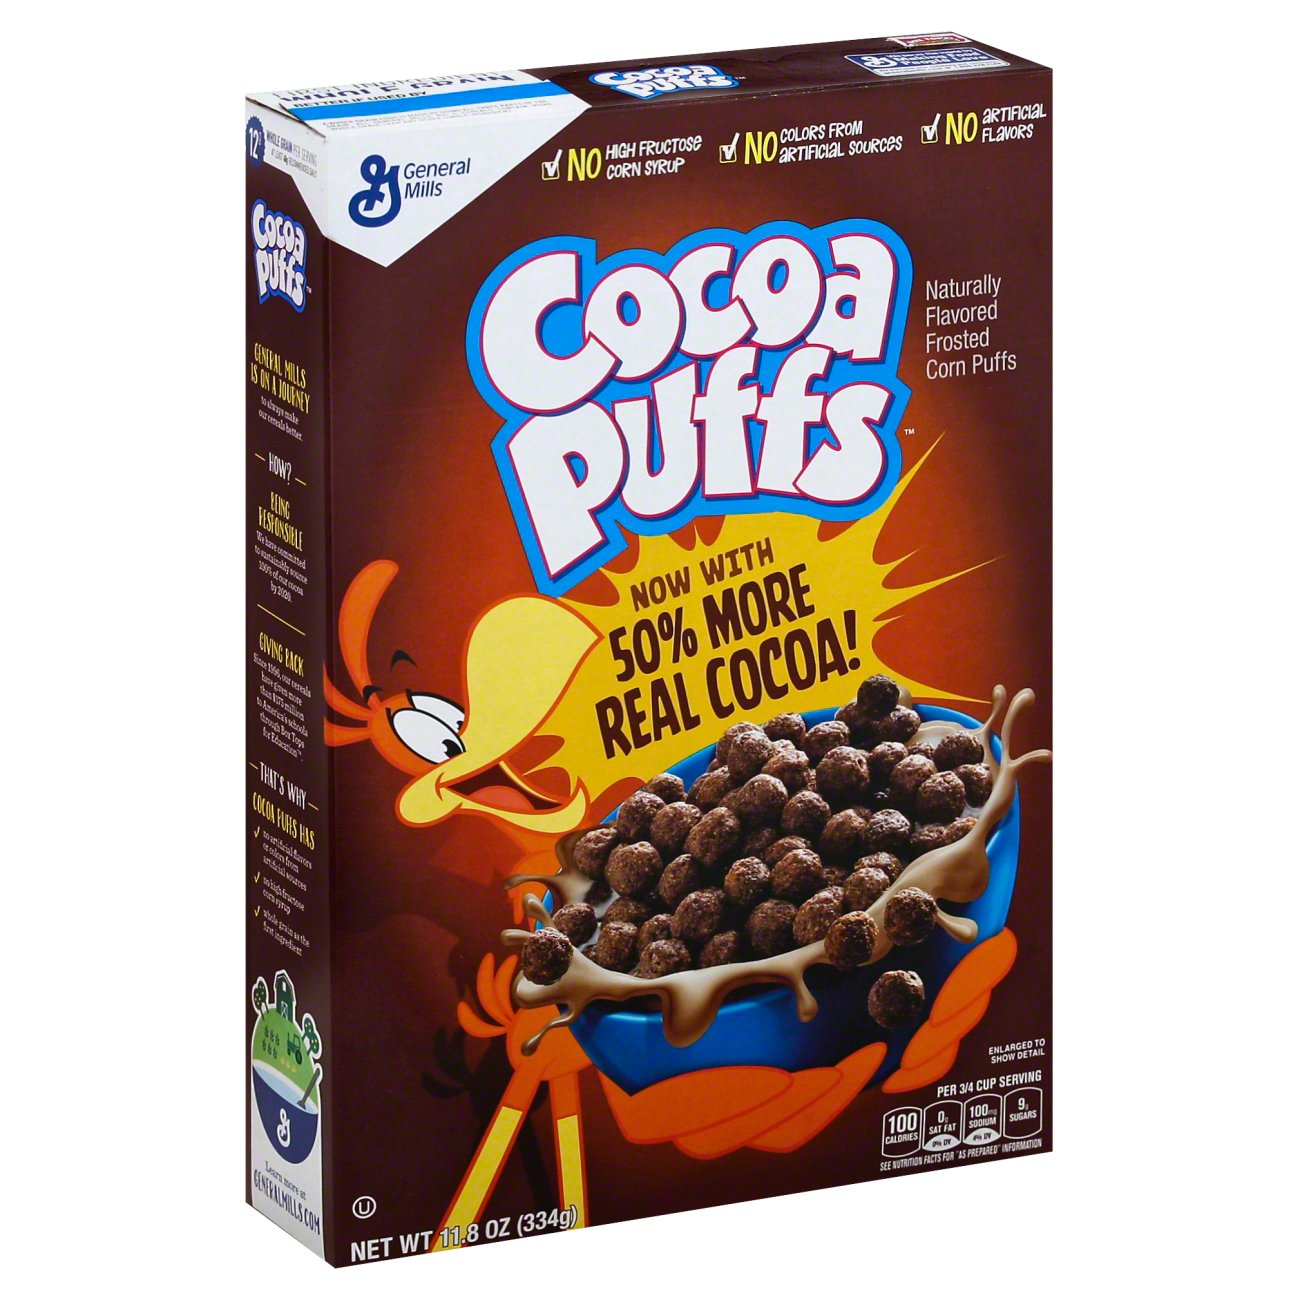 Review: Cocoa Puffs (Now With 50% More Real Cocoa) |Cocoa Puffs Cereal